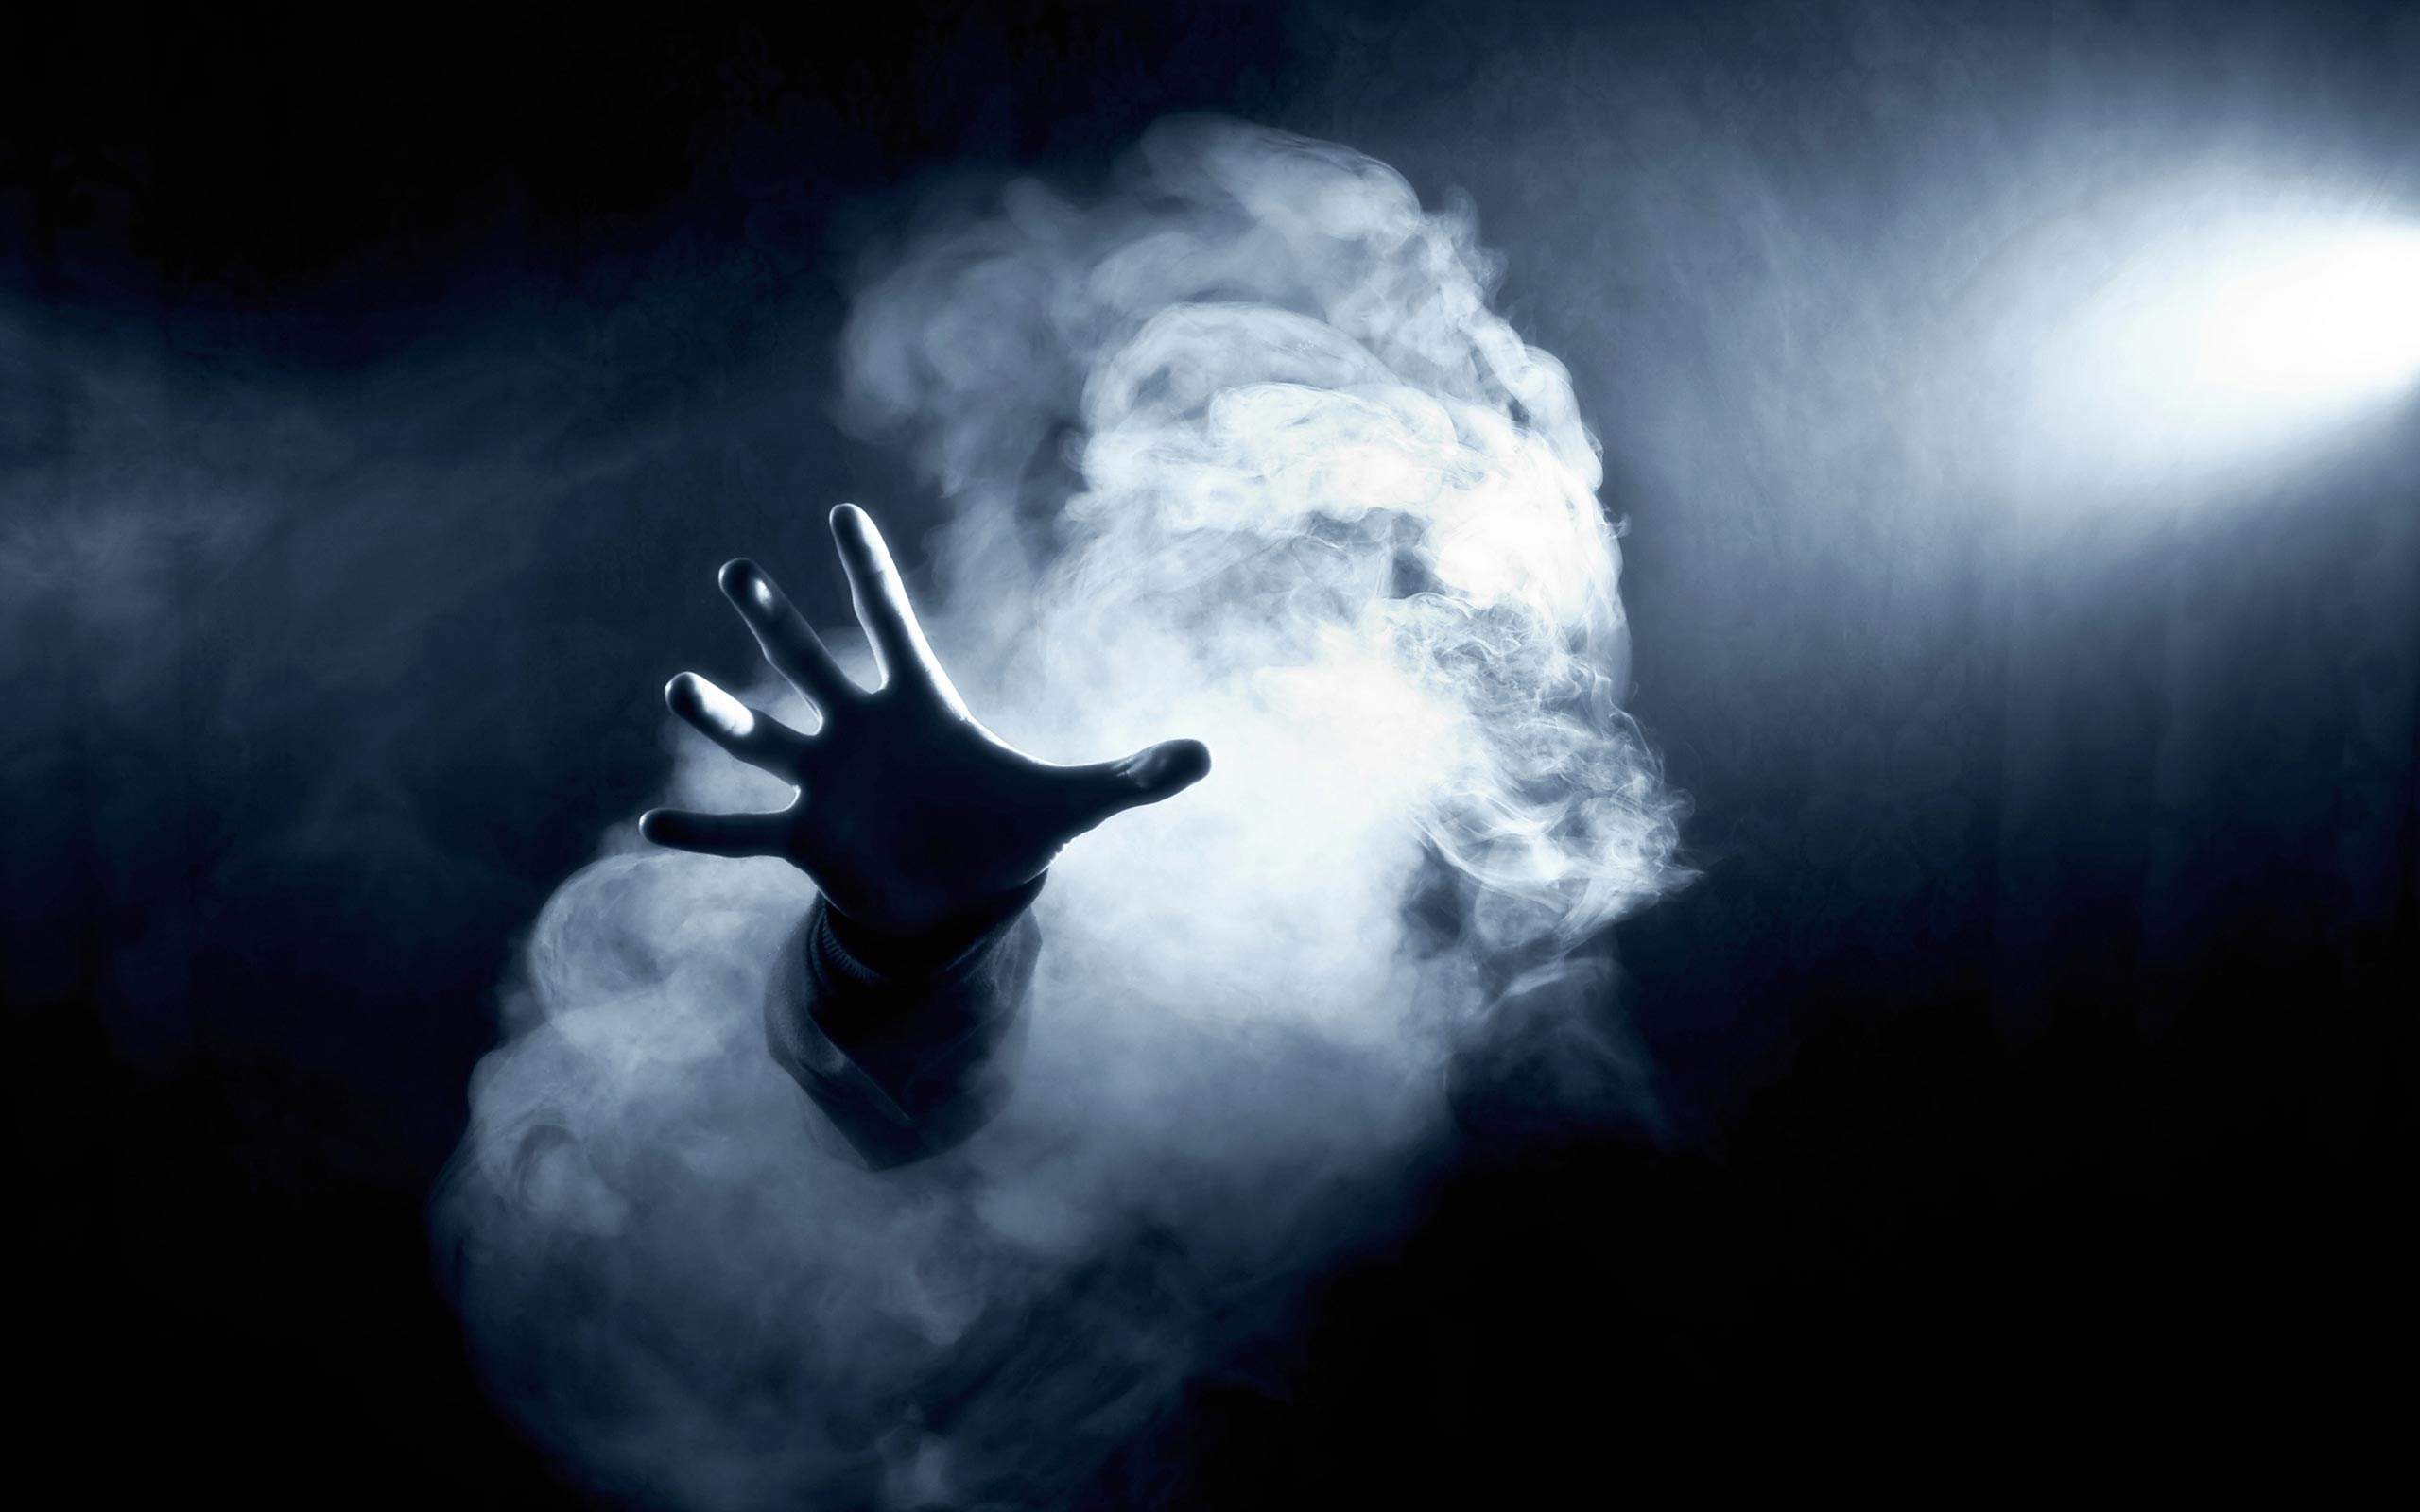 Smoke Black Hand Free Hd Wallpapers